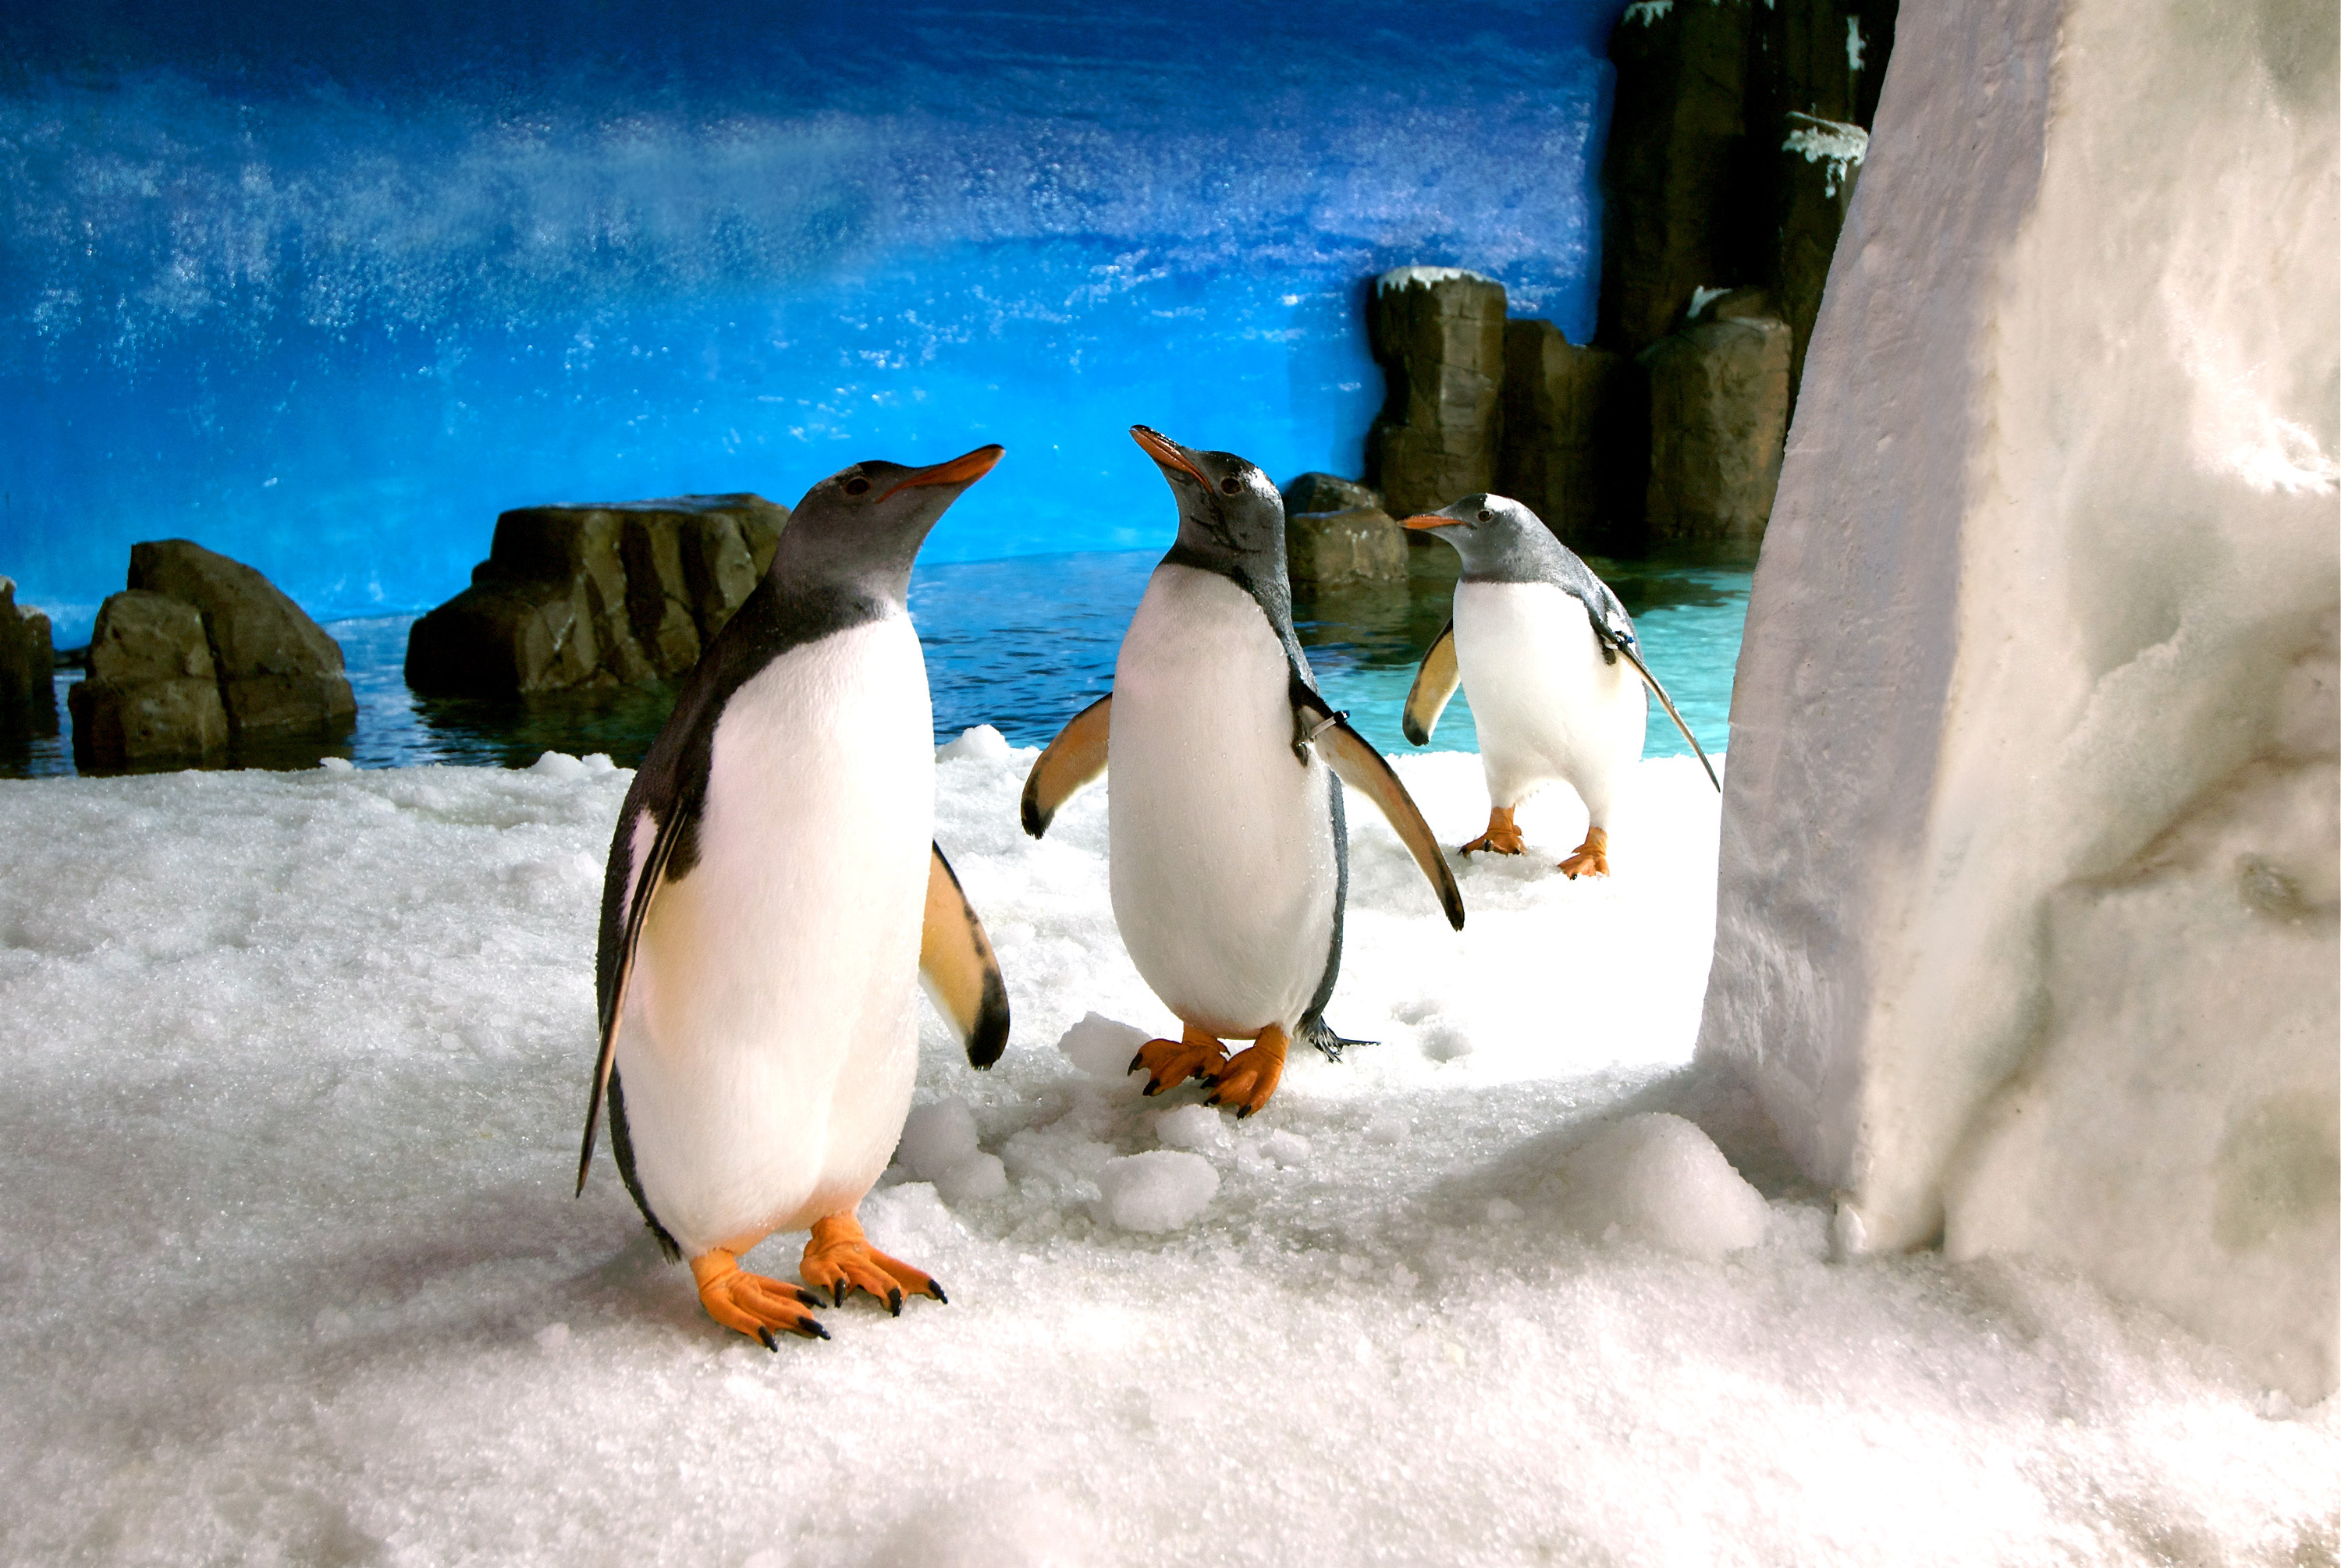 Gentoo penguins at Sea Life Melbourne